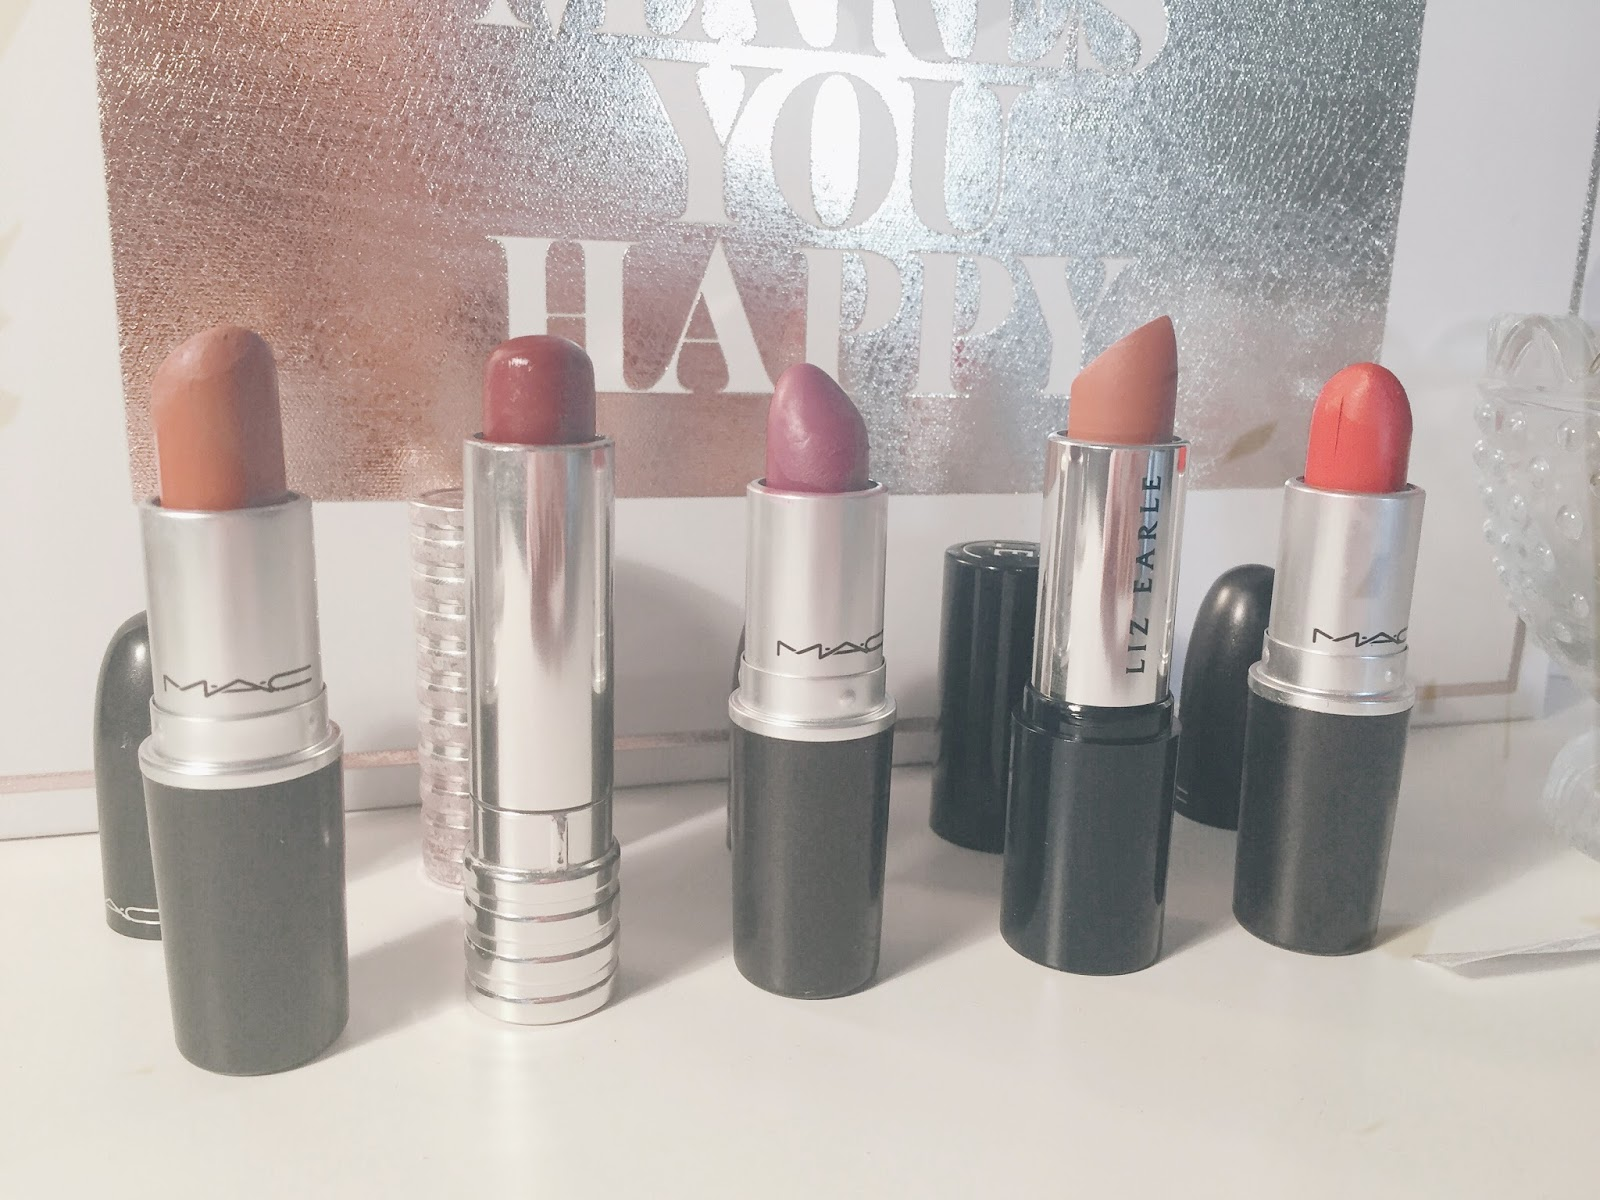 Can't decide which MAC lipstick to buy